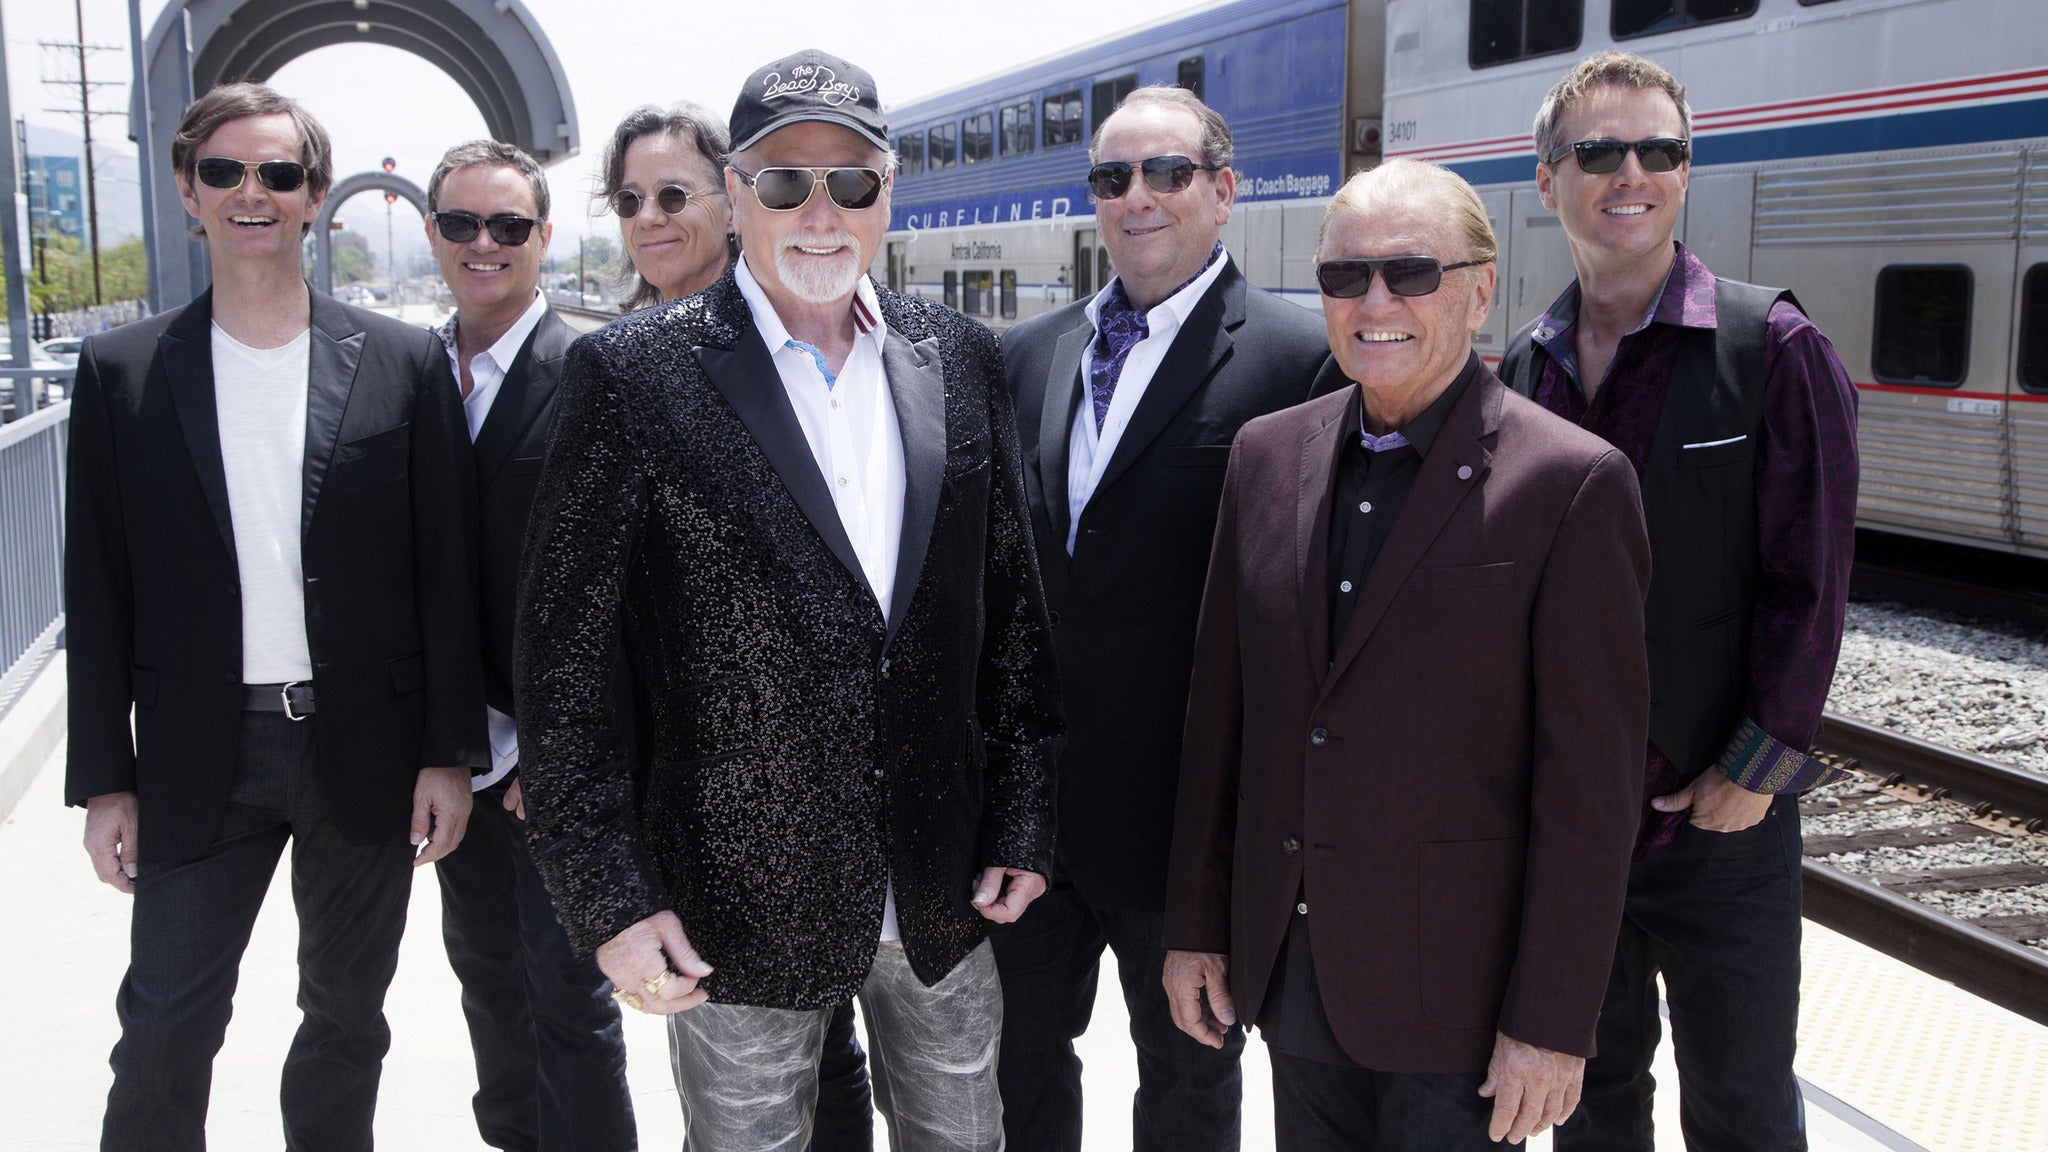 The Beach Boys at Neal S Blaisdell Concert Hall